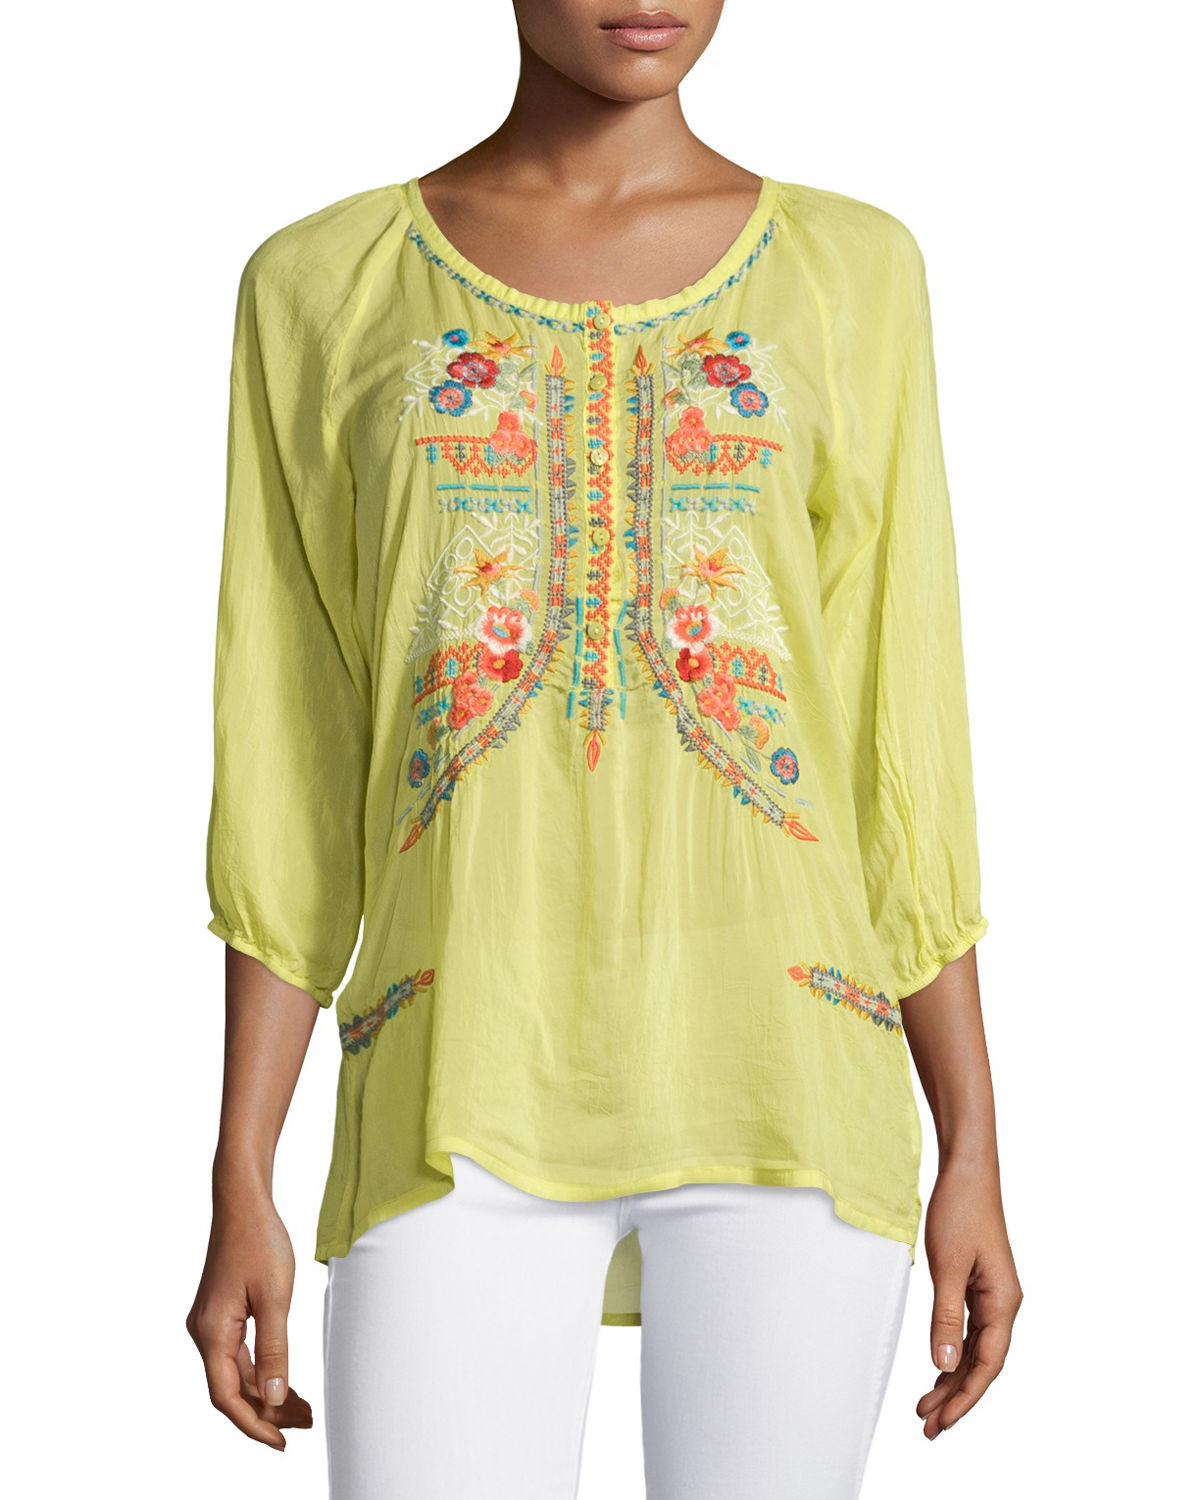 Ari 3/4-Sleeve Embroidered Blouse, Plus Size